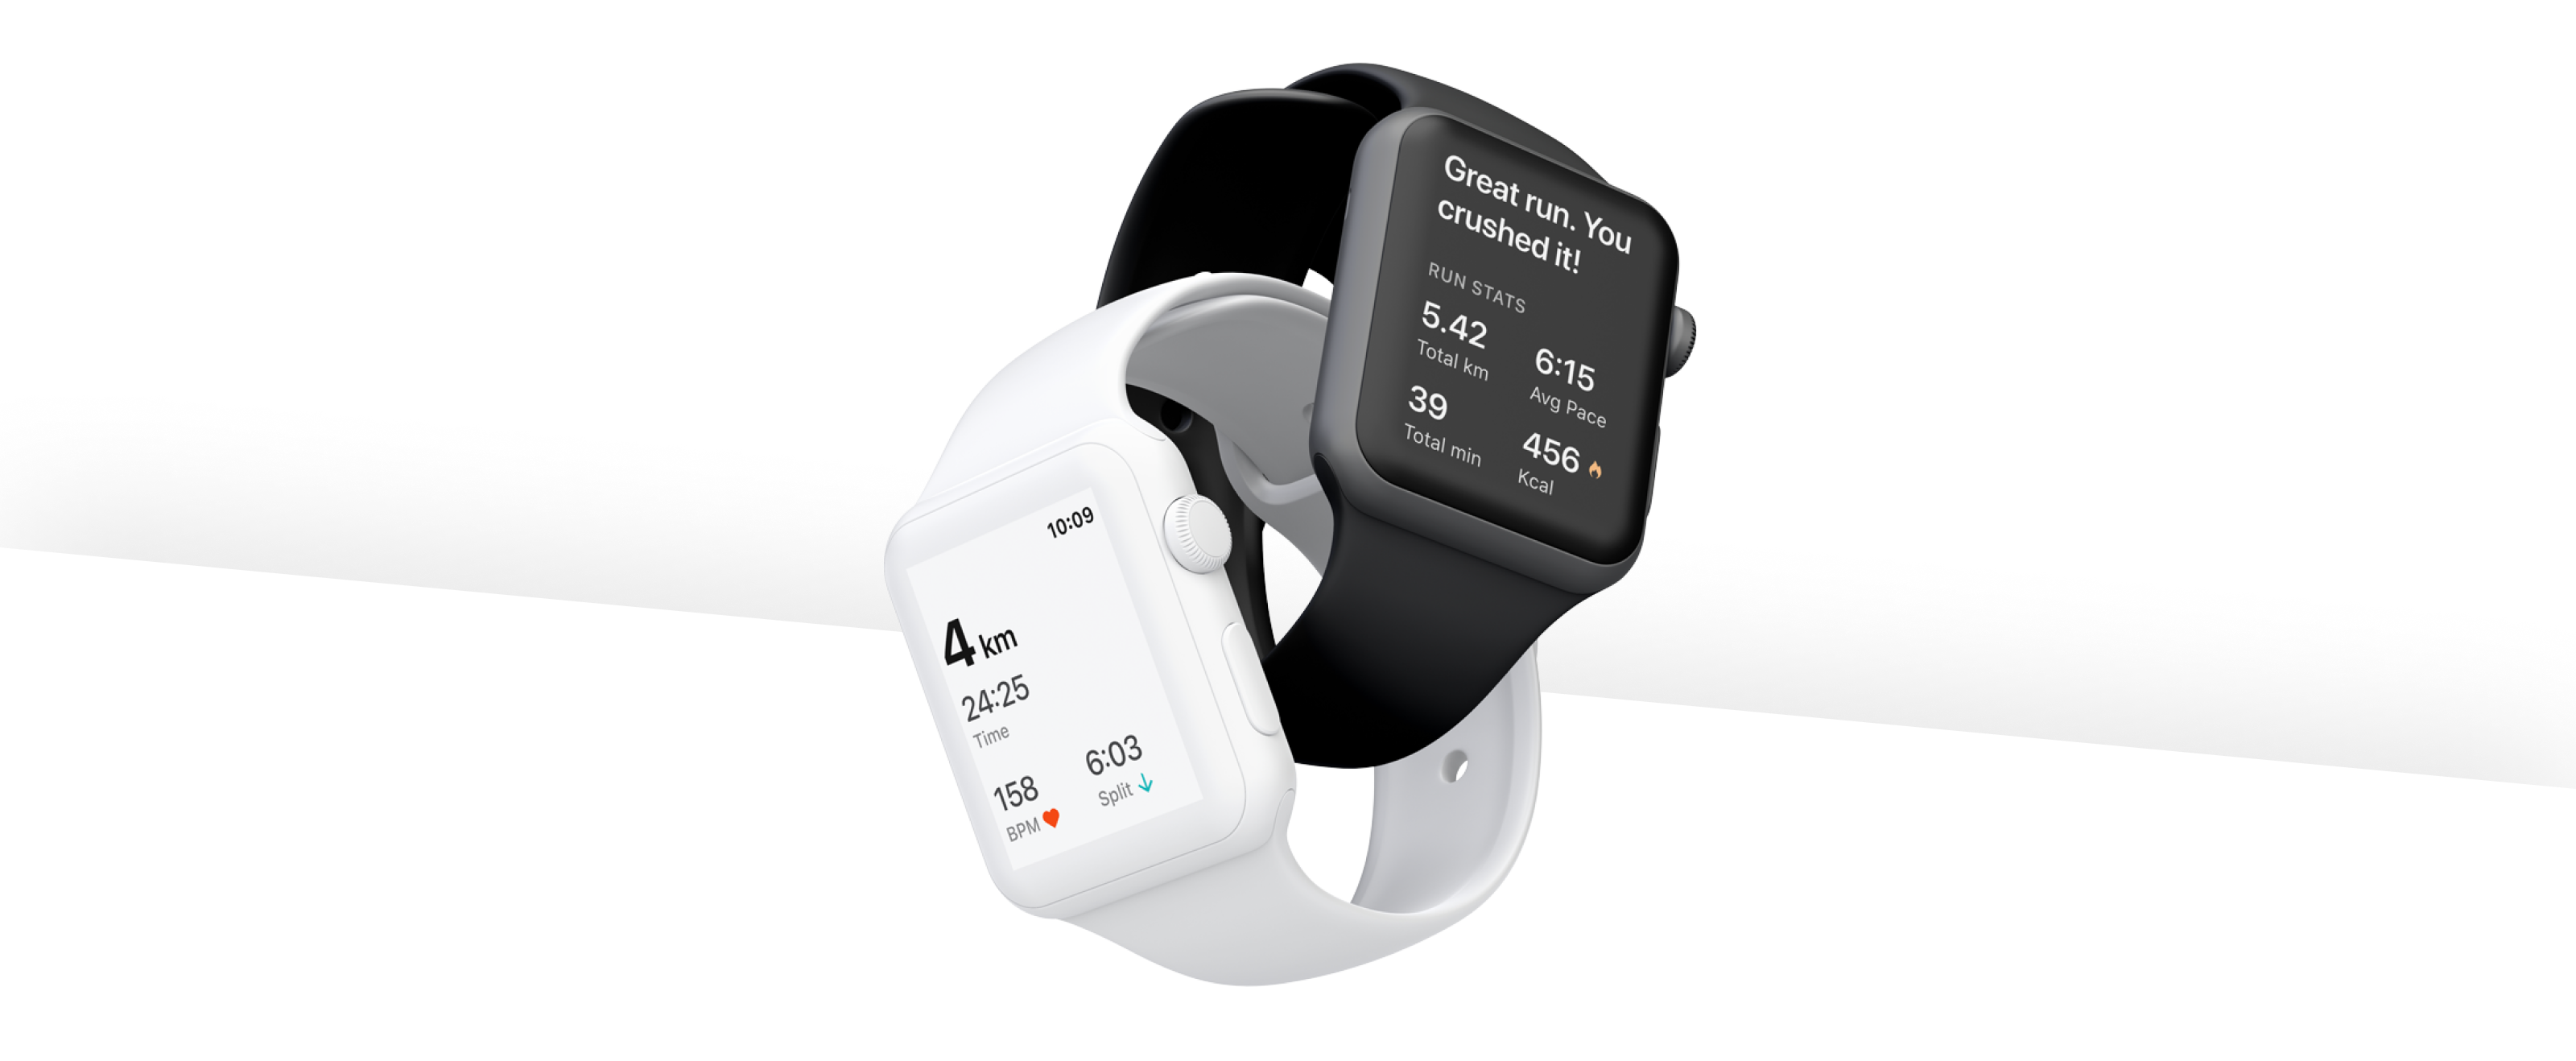 Two apple watches entwined together displaying screens of a new Run experience